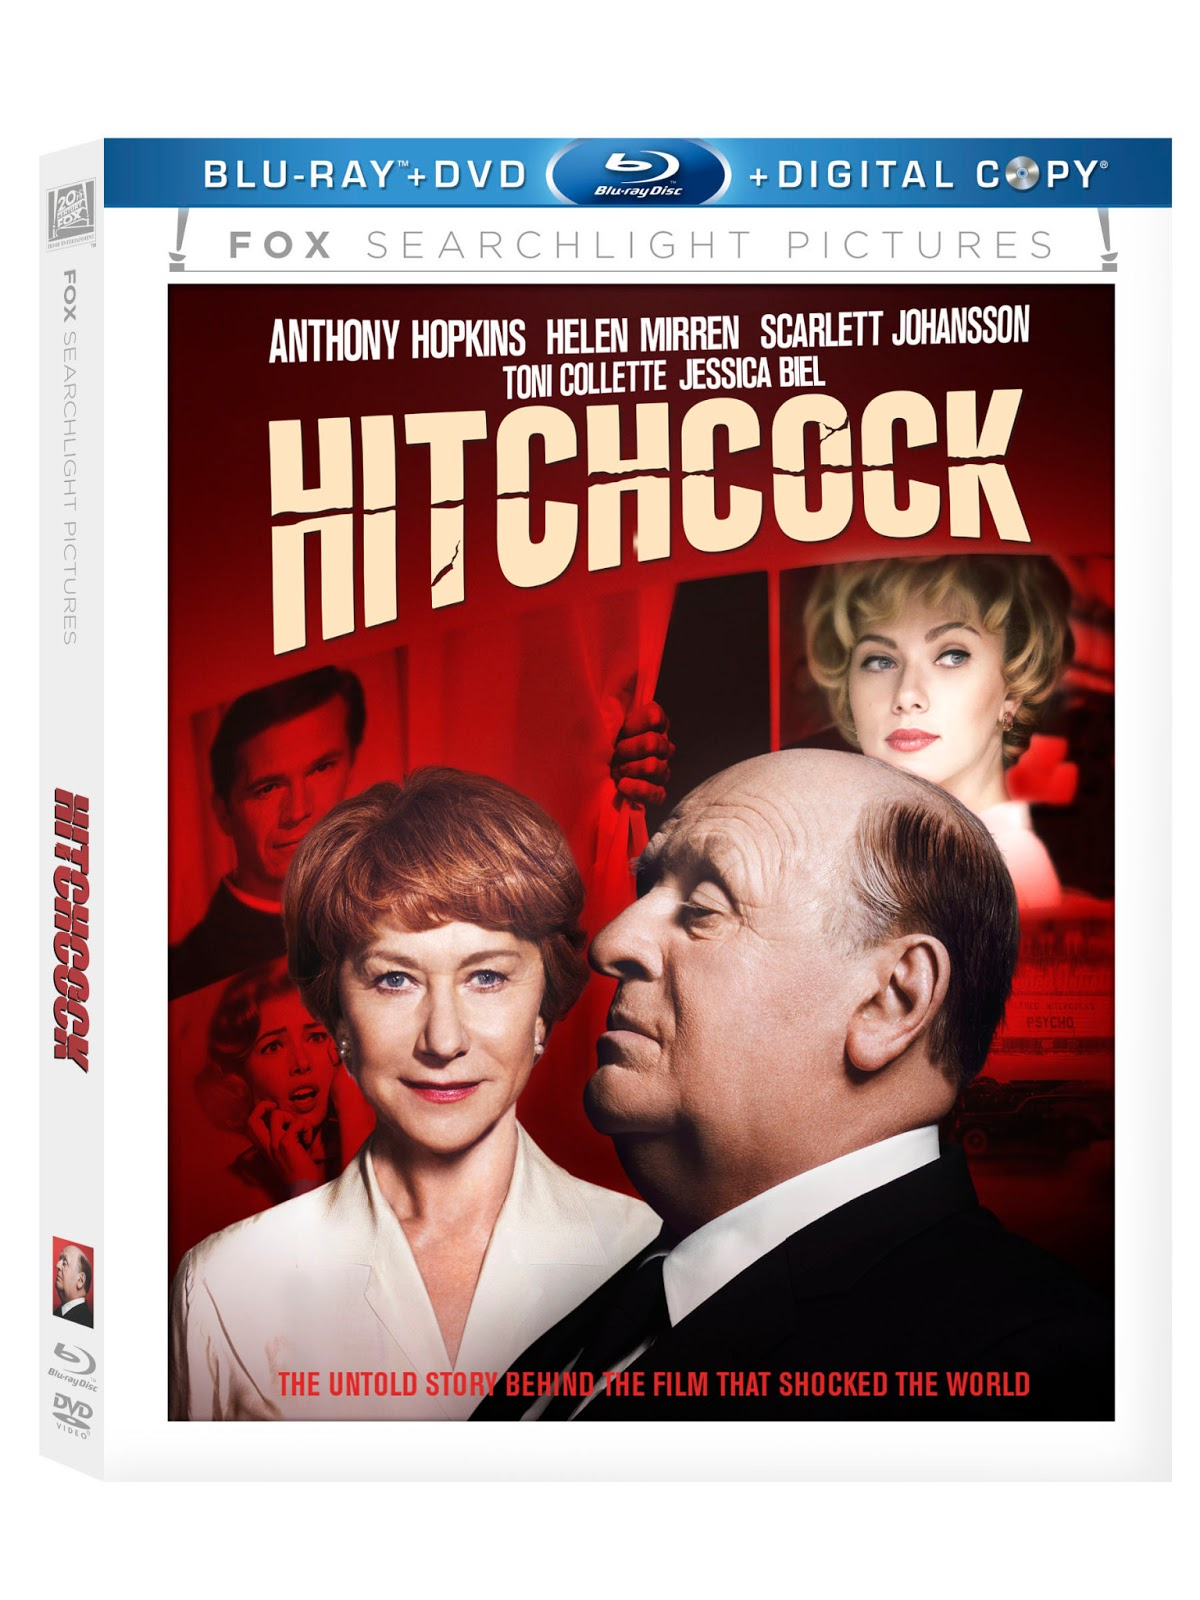 Hitchcock blu ray Win A Hitchcock Blu ray From ShockYa!